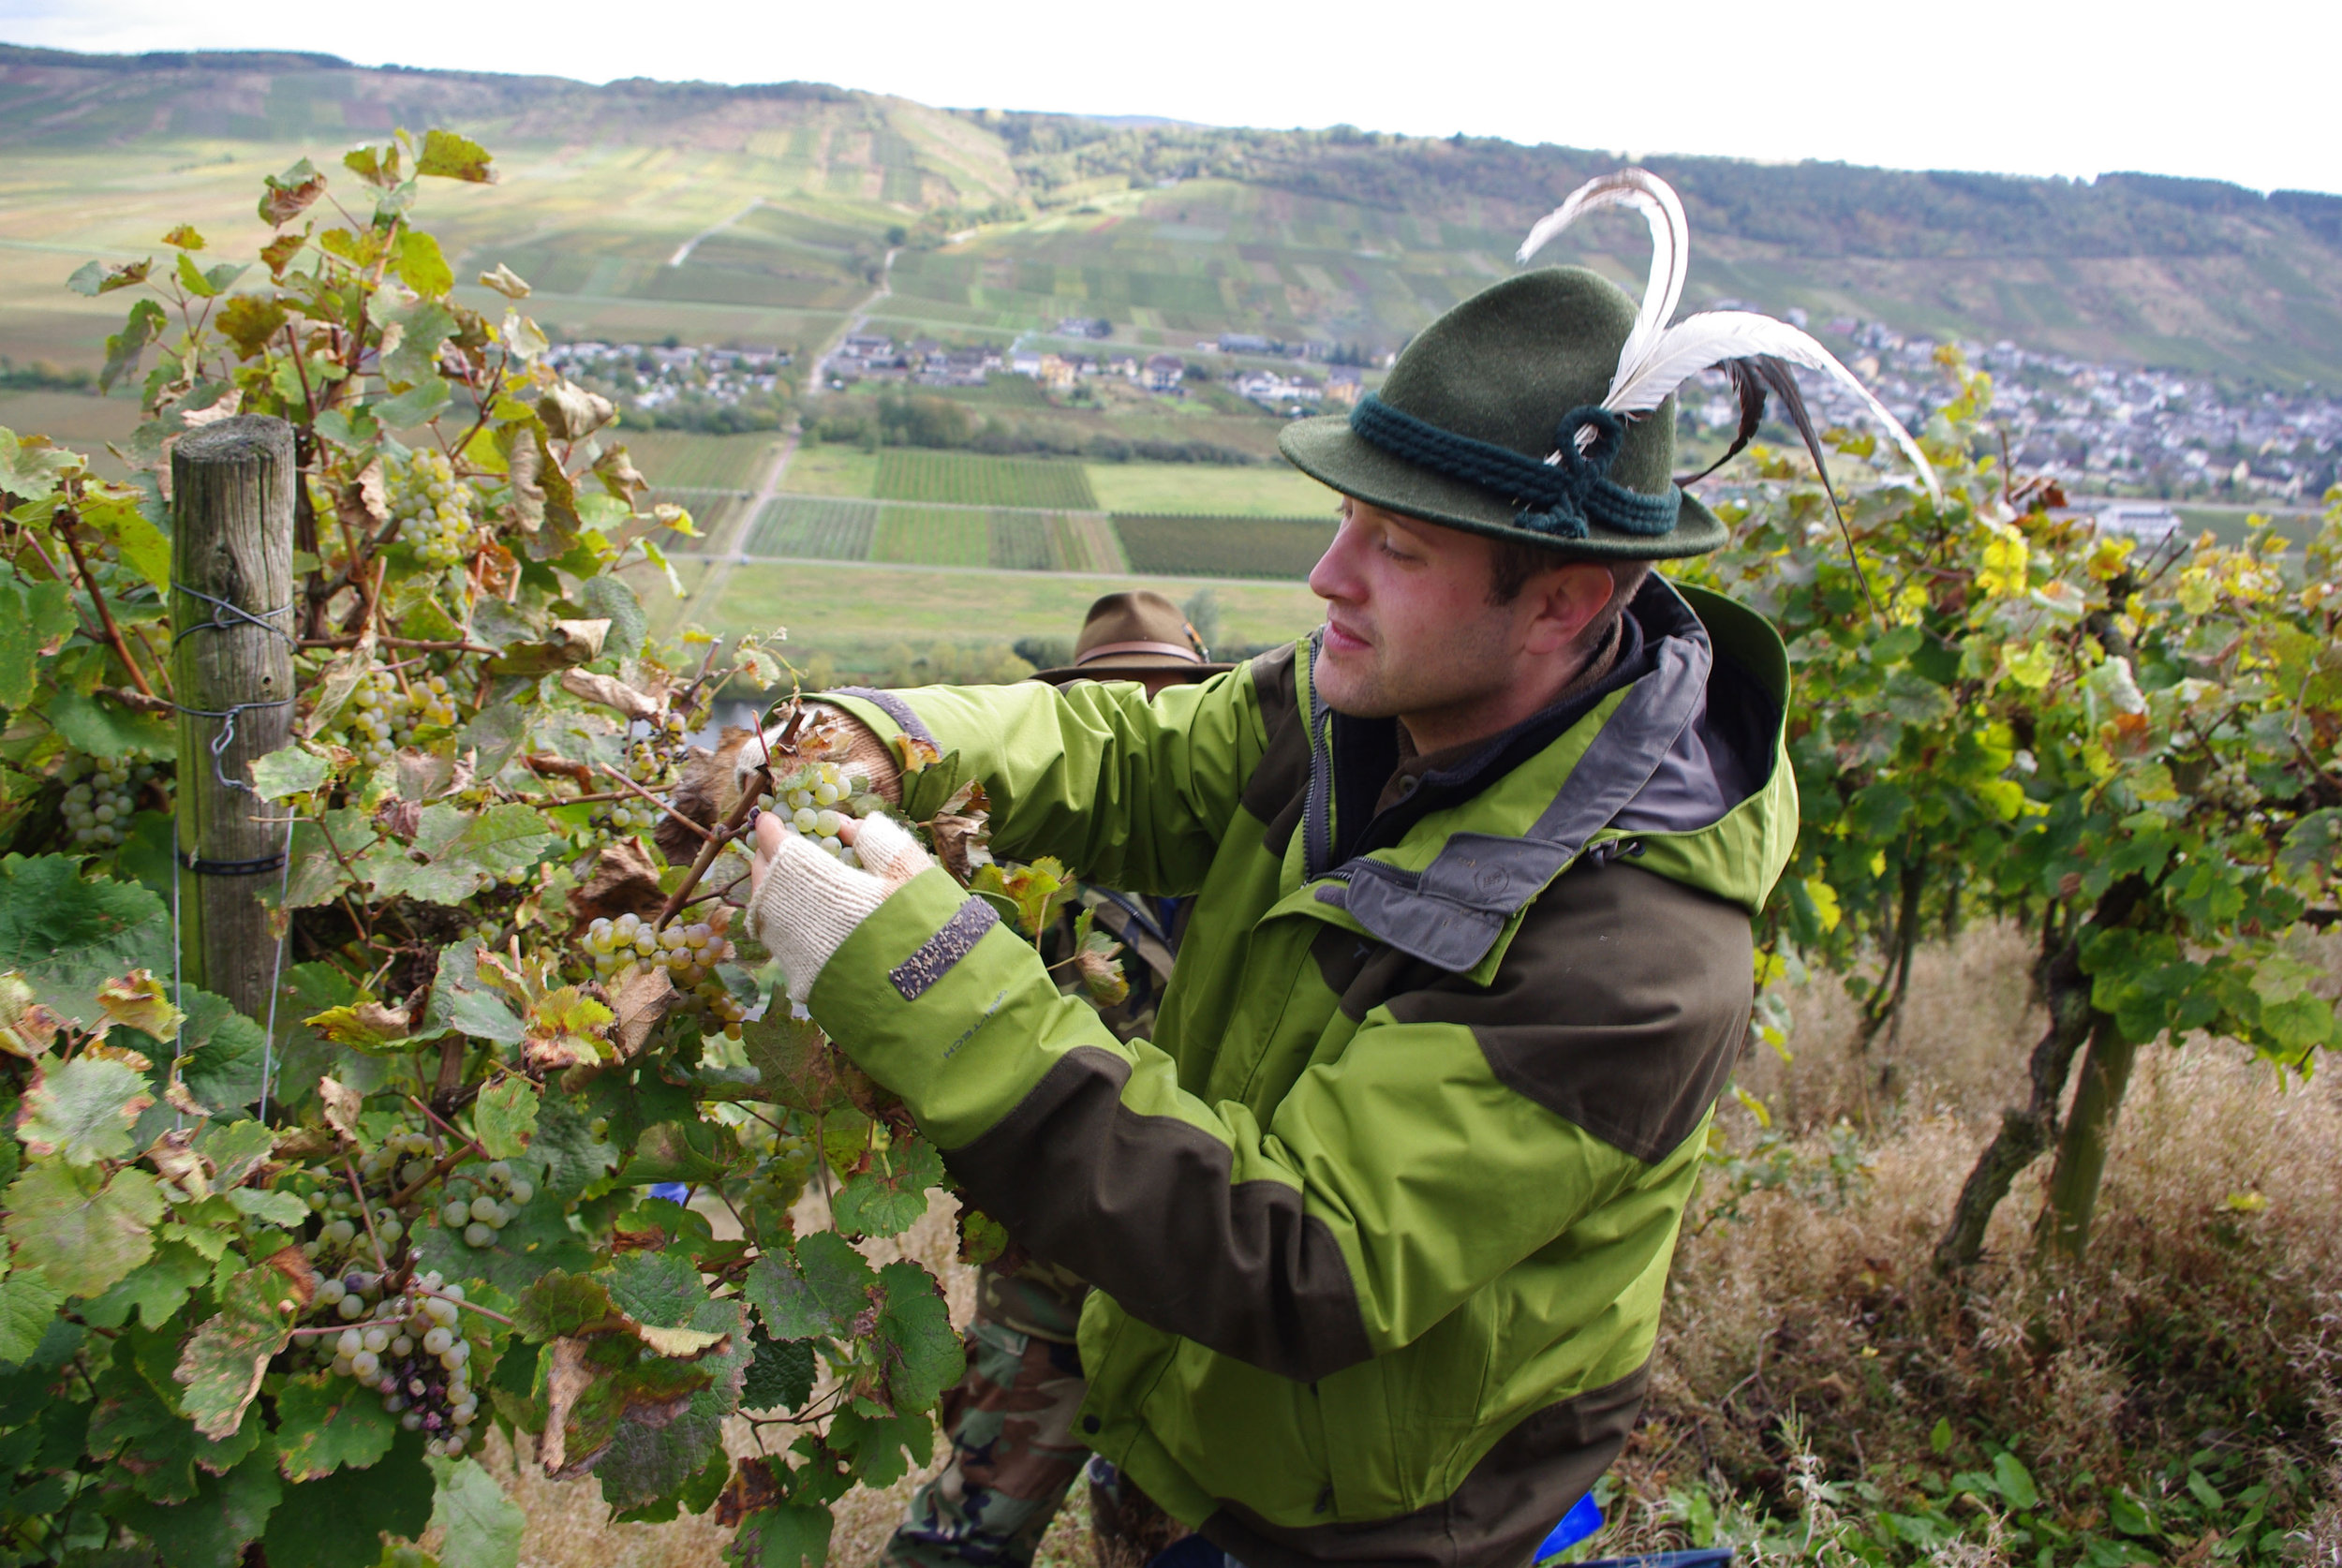 A visiting staff sergeant from Spangdahlemn air base prunes grapes to help with the harvest of a local vintner in Mosel, Germany (U.S. Air Force).